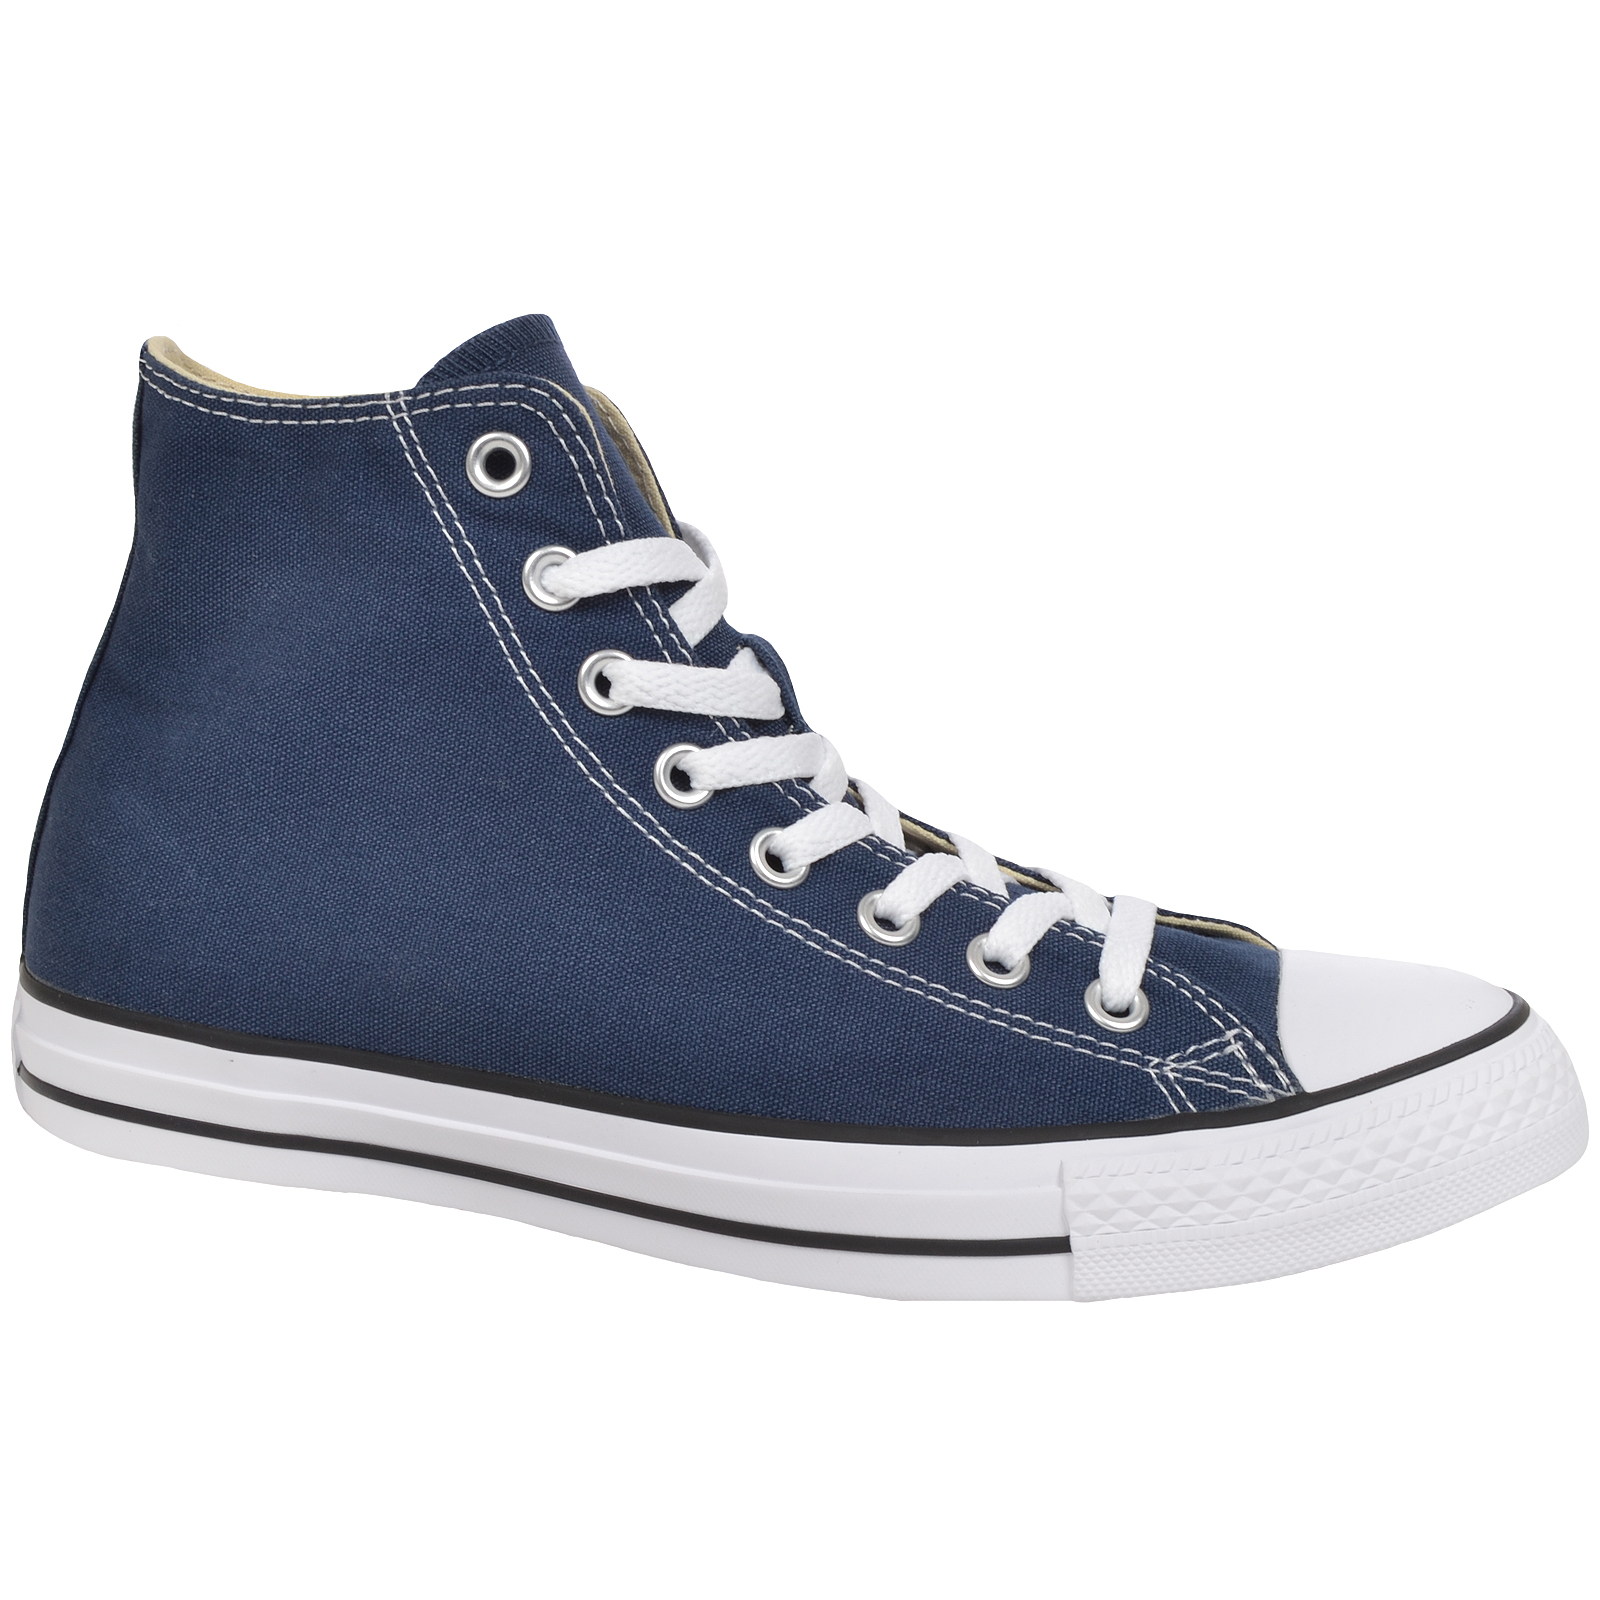 Taylor High Star Canvas Chuck Baseball Navy Converse Classic Top All Shoes Trainers HxqO5wY